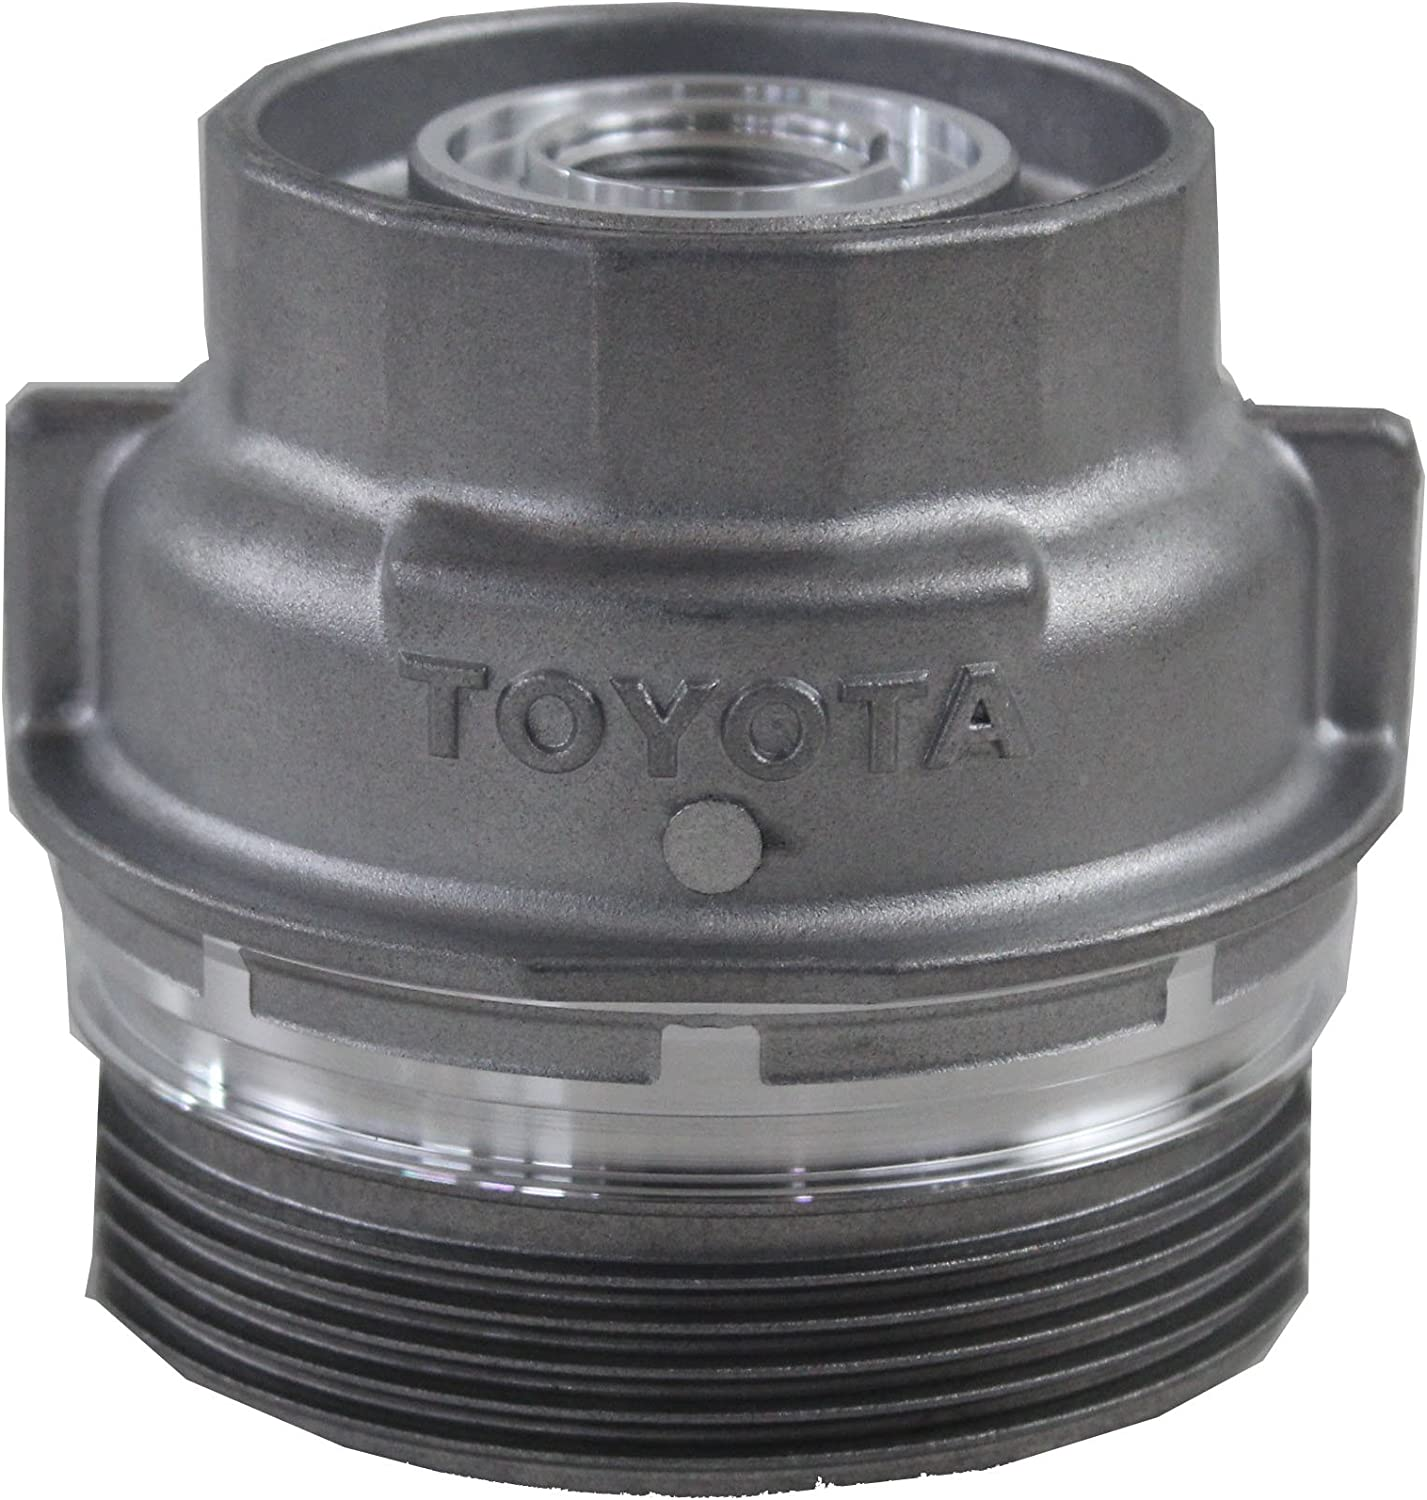 Amazon Com Genuine Toyota 15620 31060 Oil Filter Cap Assembly Automotive